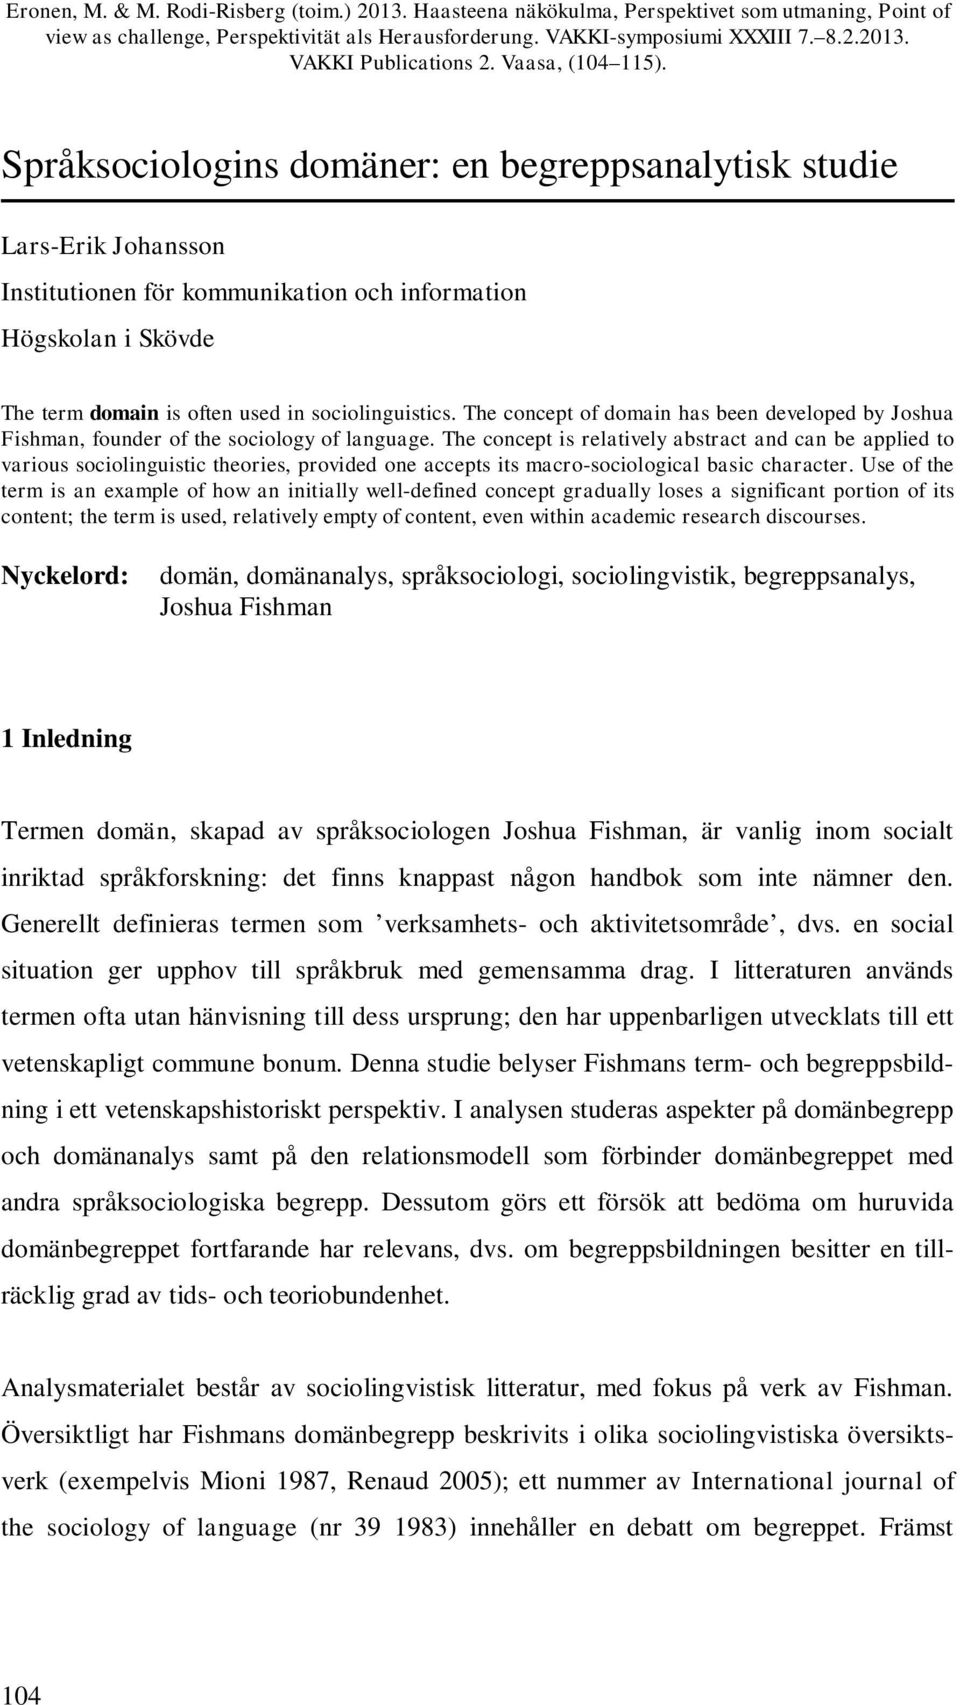 Språksociologins domäner: en begreppsanalytisk studie Lars-Erik Johansson Institutionen för kommunikation och information Högskolan i Skövde The term domain is often used in sociolinguistics.